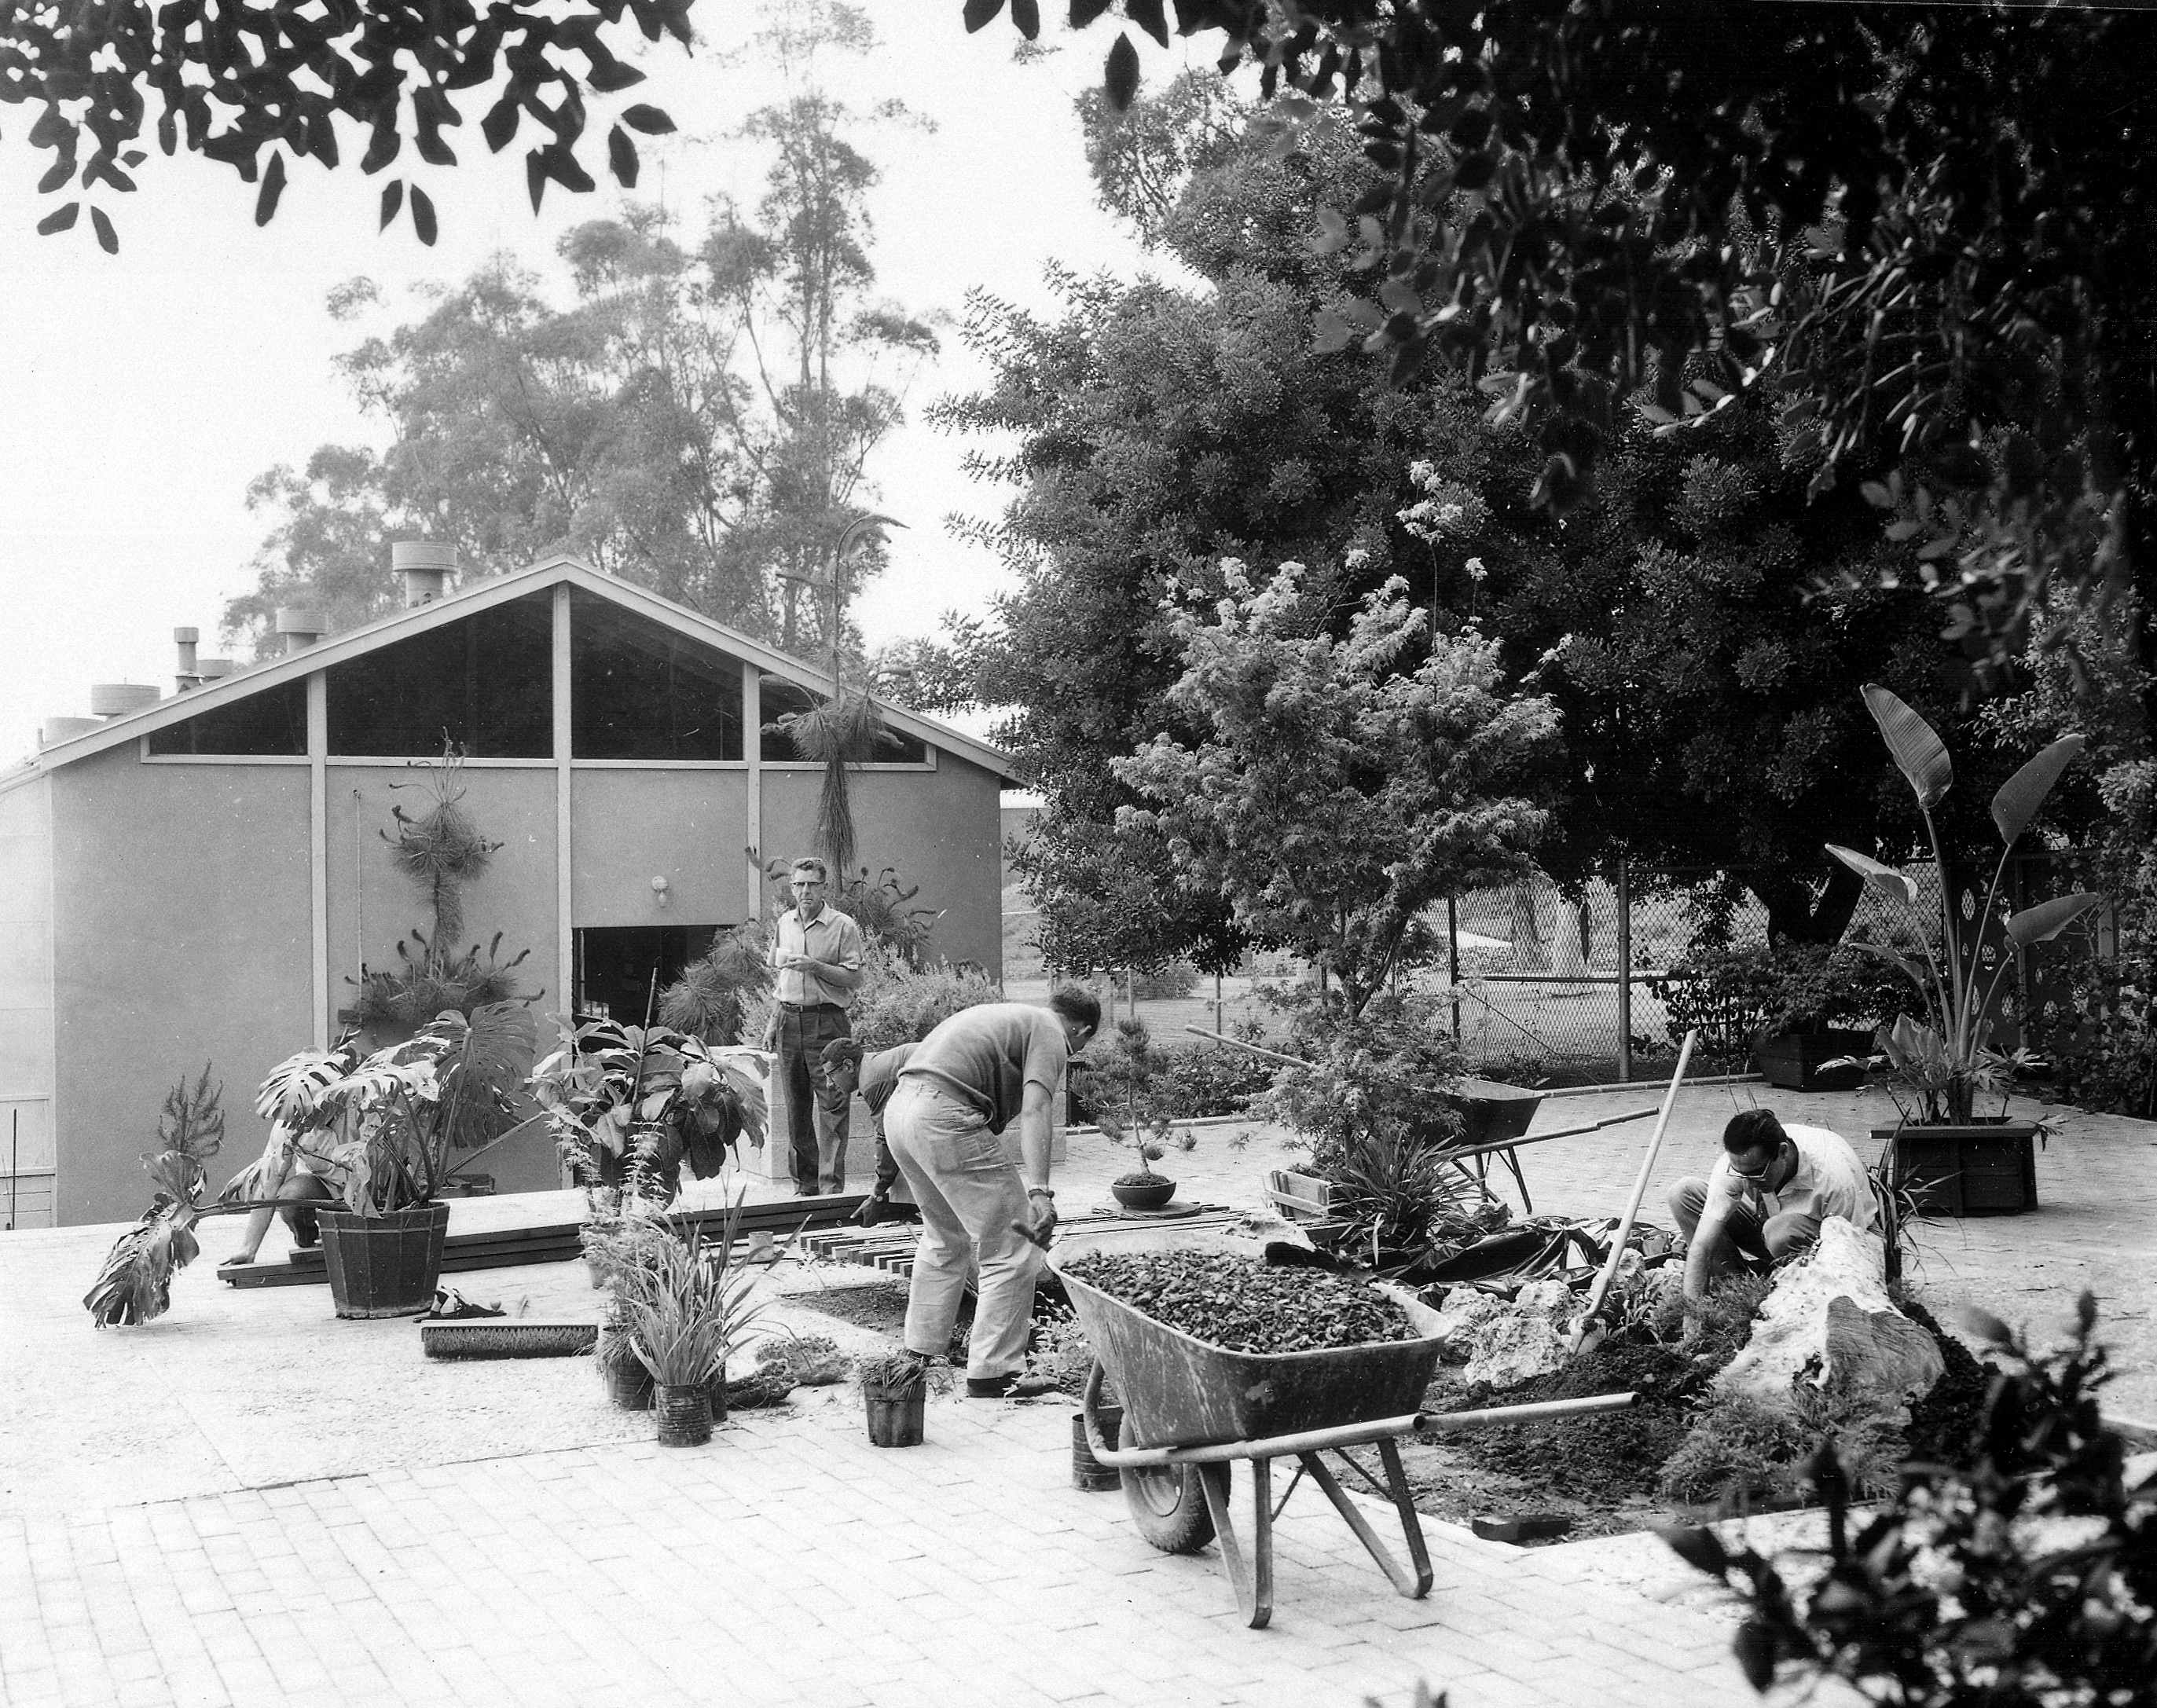 The Horticulture Unit